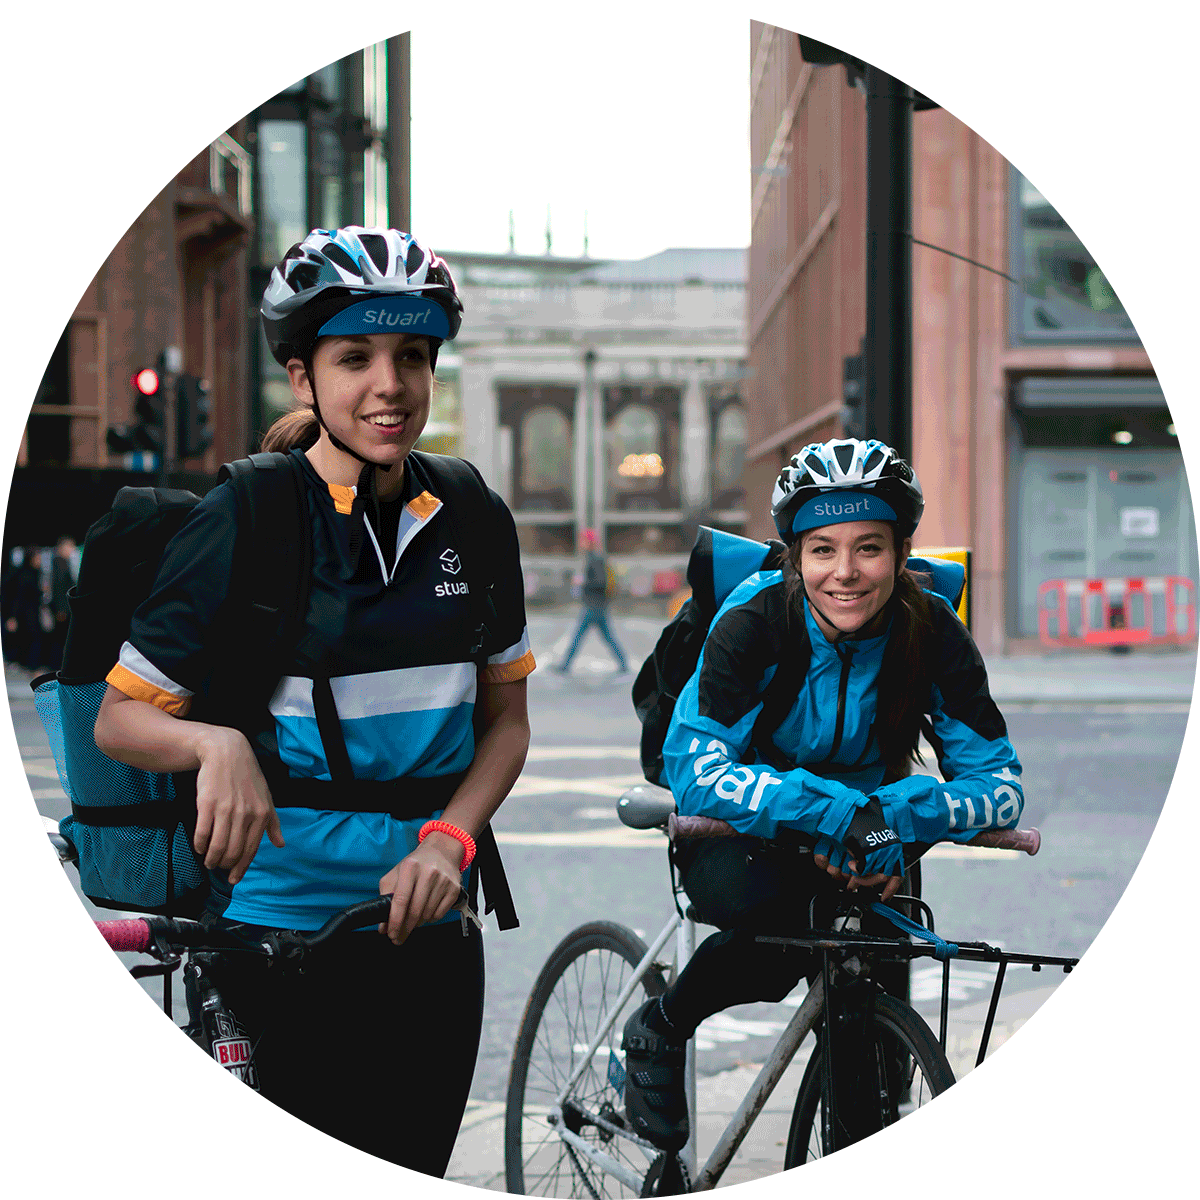 Two smiling female cyclists enjoy a break from Stuart courier life